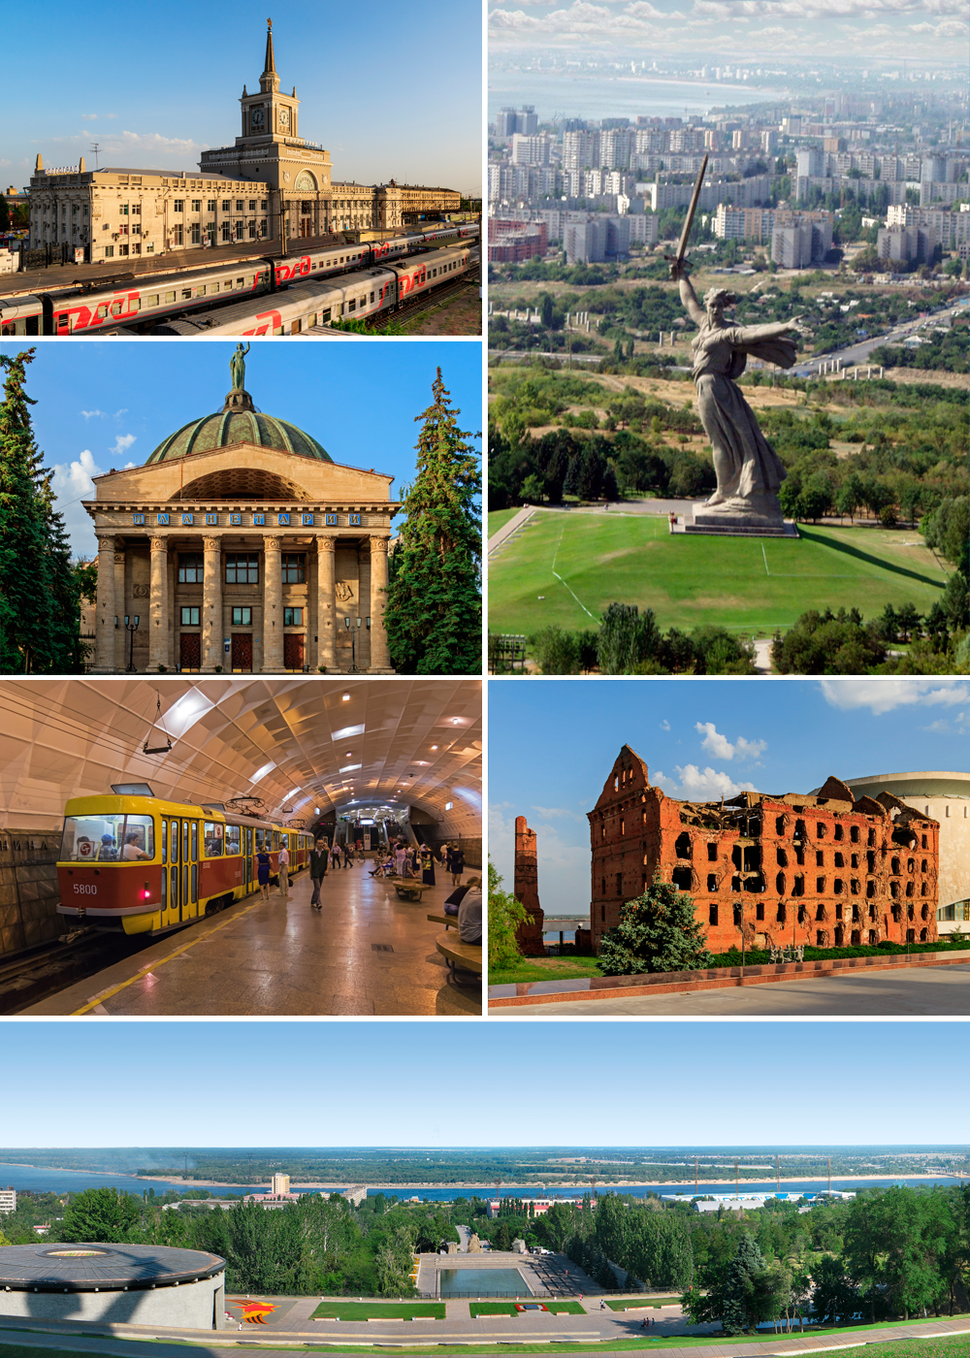 Counterclockwise: The Motherland Calls, the railway station, Planetarium, The Metrotram, Panorama of the City, Gerhardt Mill, Mamayev Kurgan